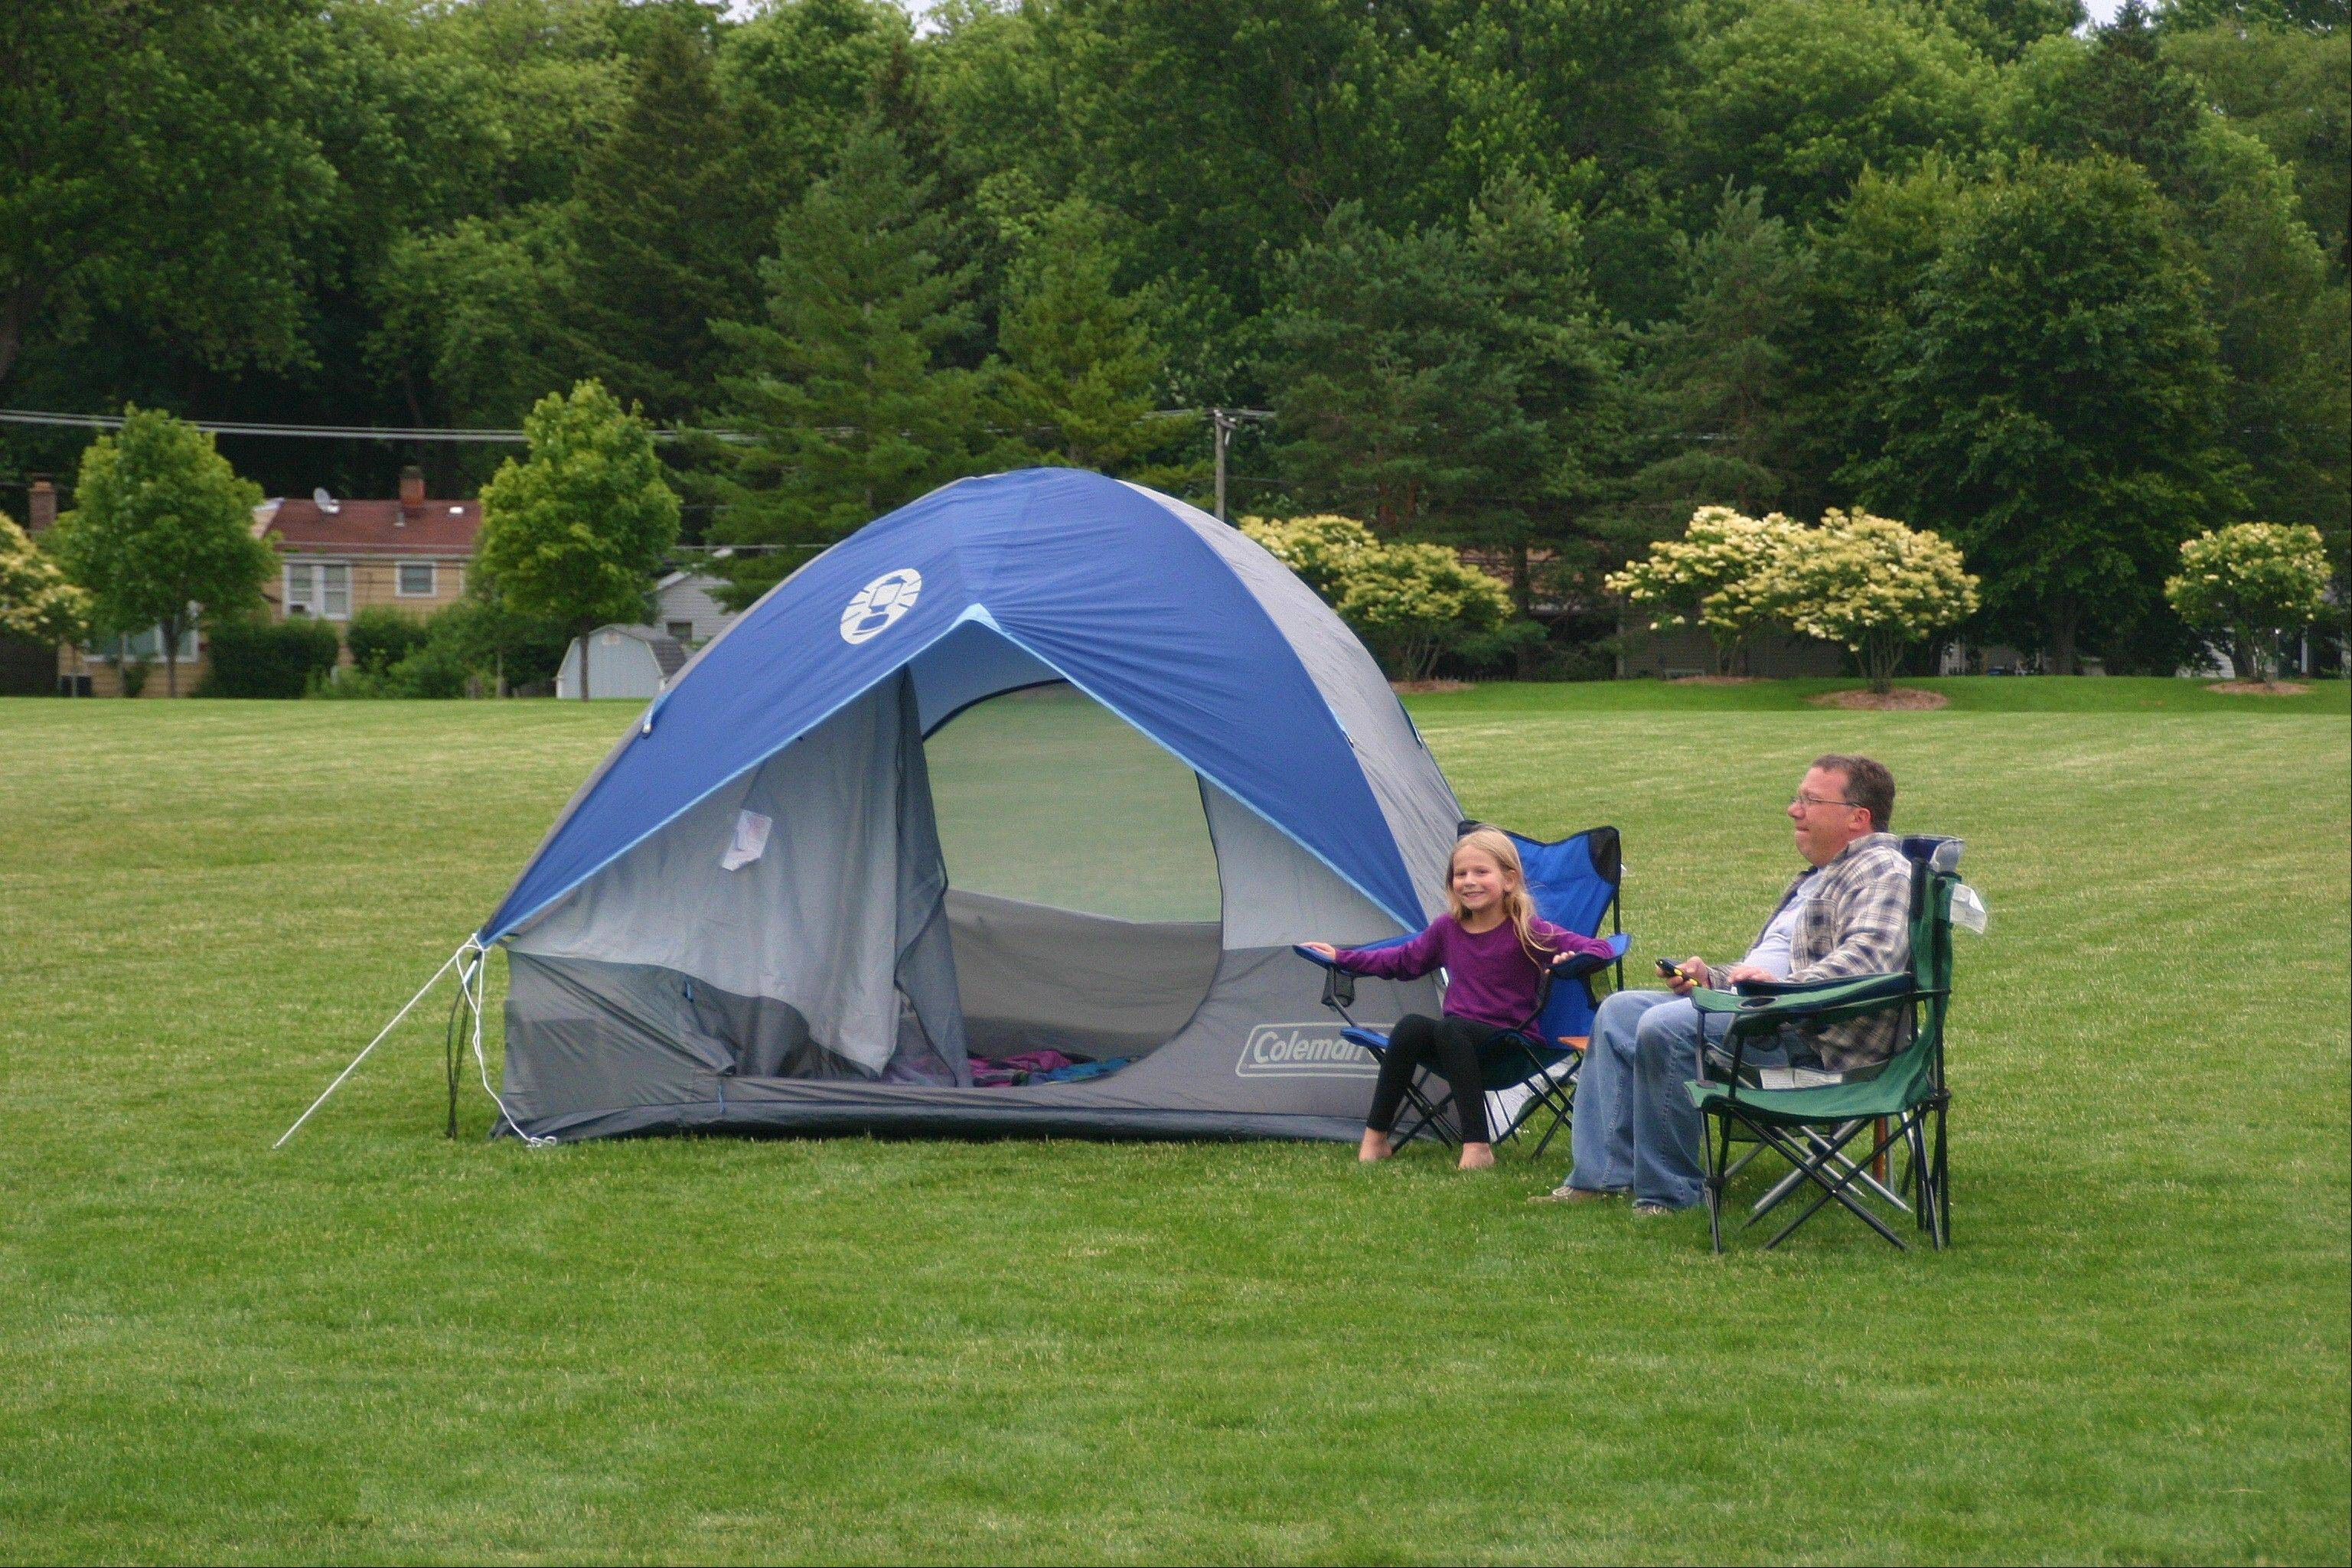 Abigail Heap and her father relax in front of their tent at the second annual Family Campout on June 29-30.